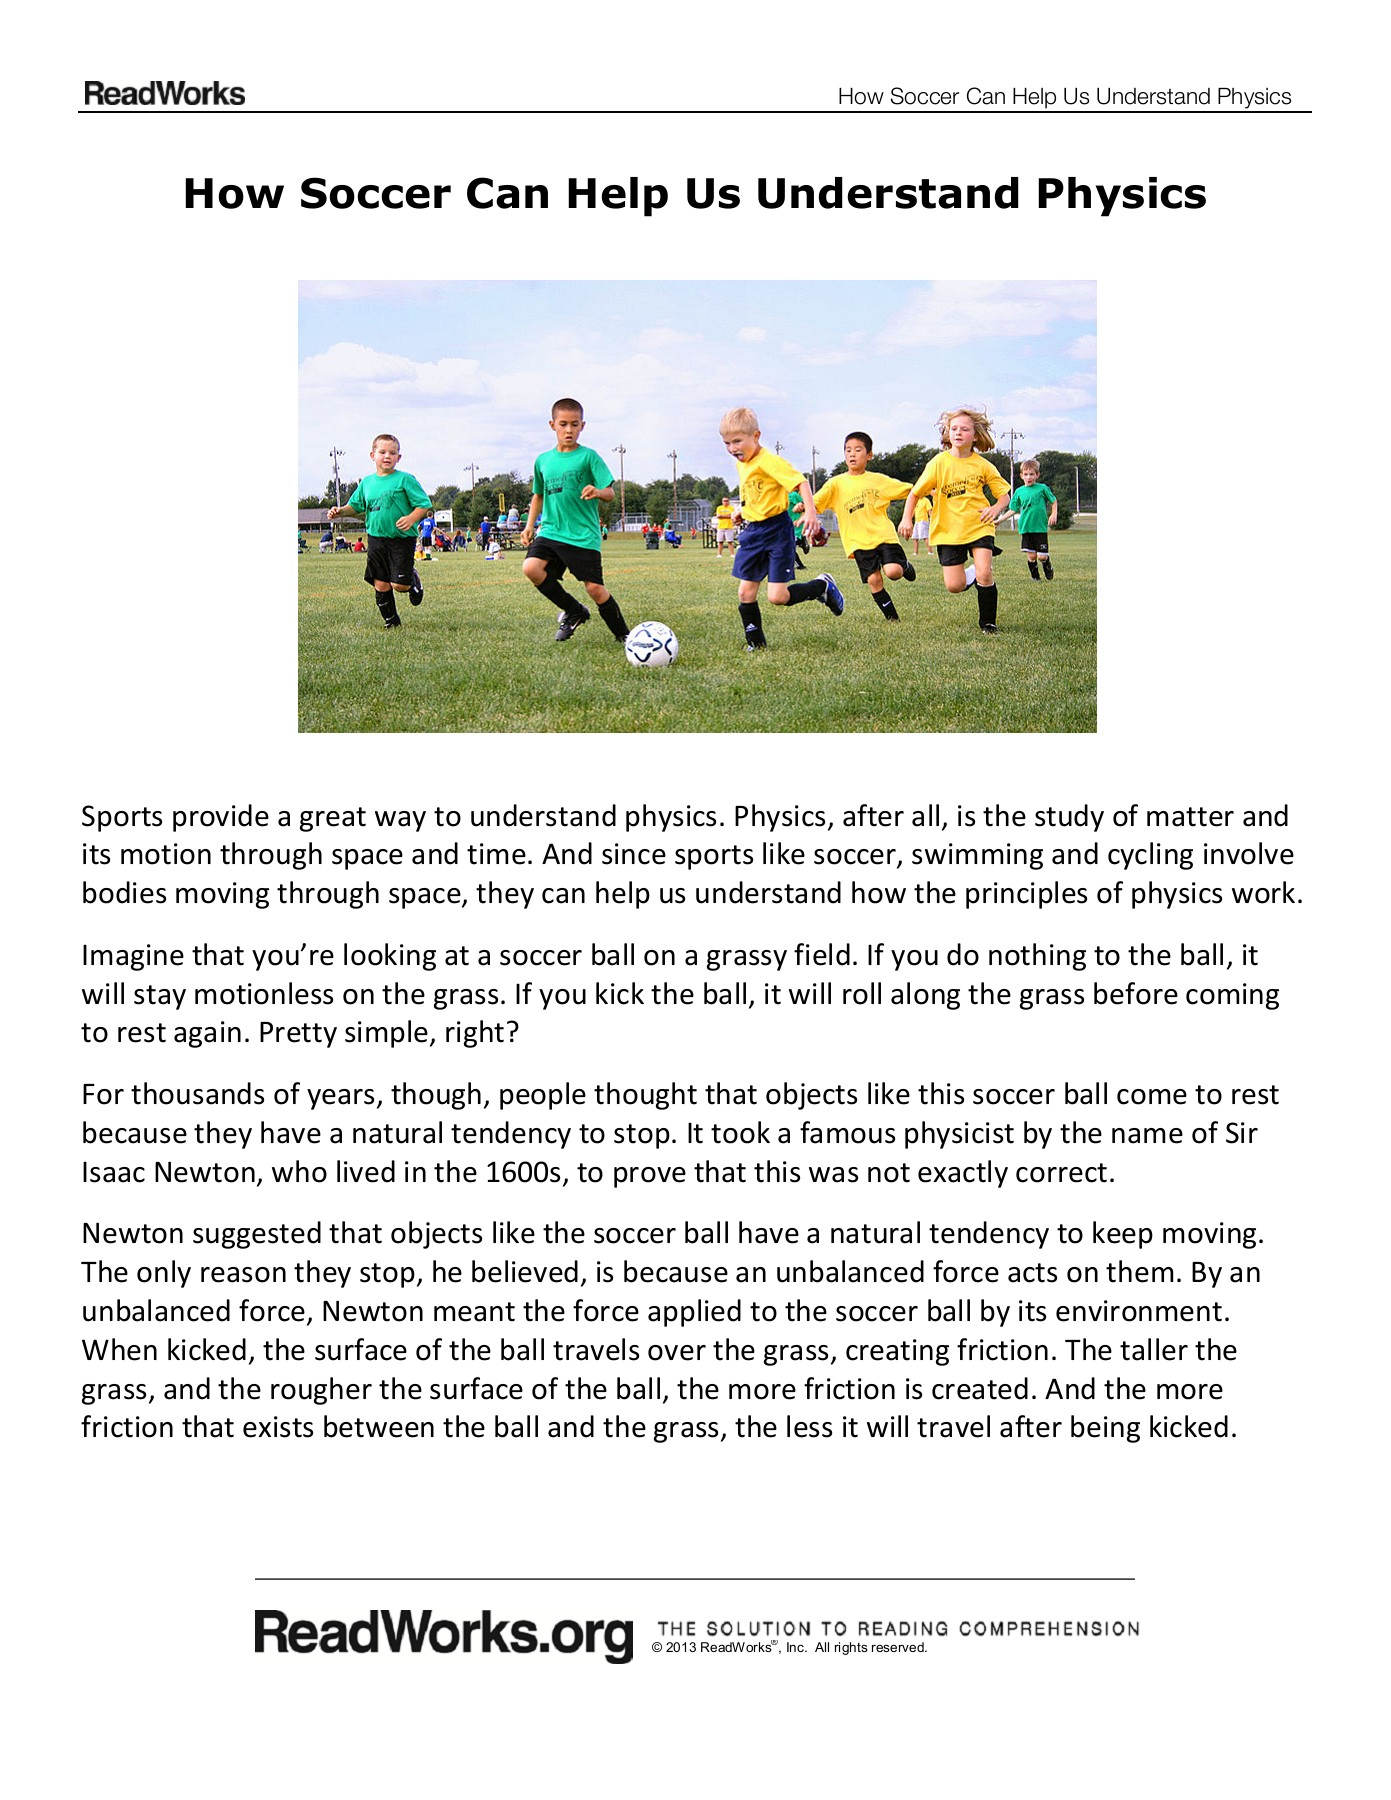 How Soccer Can Help Us Understand Physics - Denton ISD